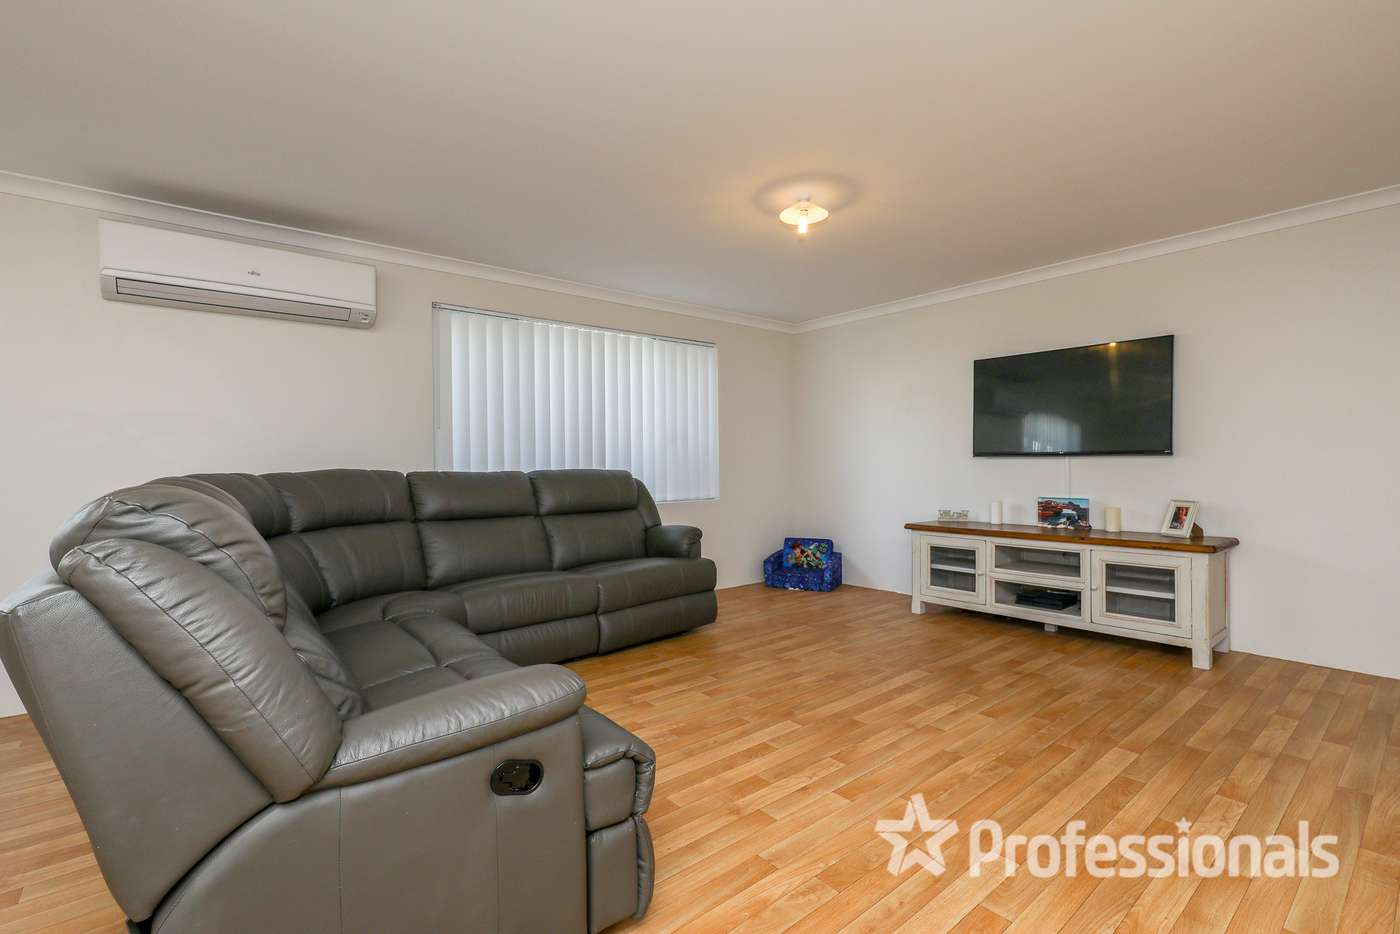 Fifth view of Homely house listing, 6 Derwent Street, Ellenbrook WA 6069